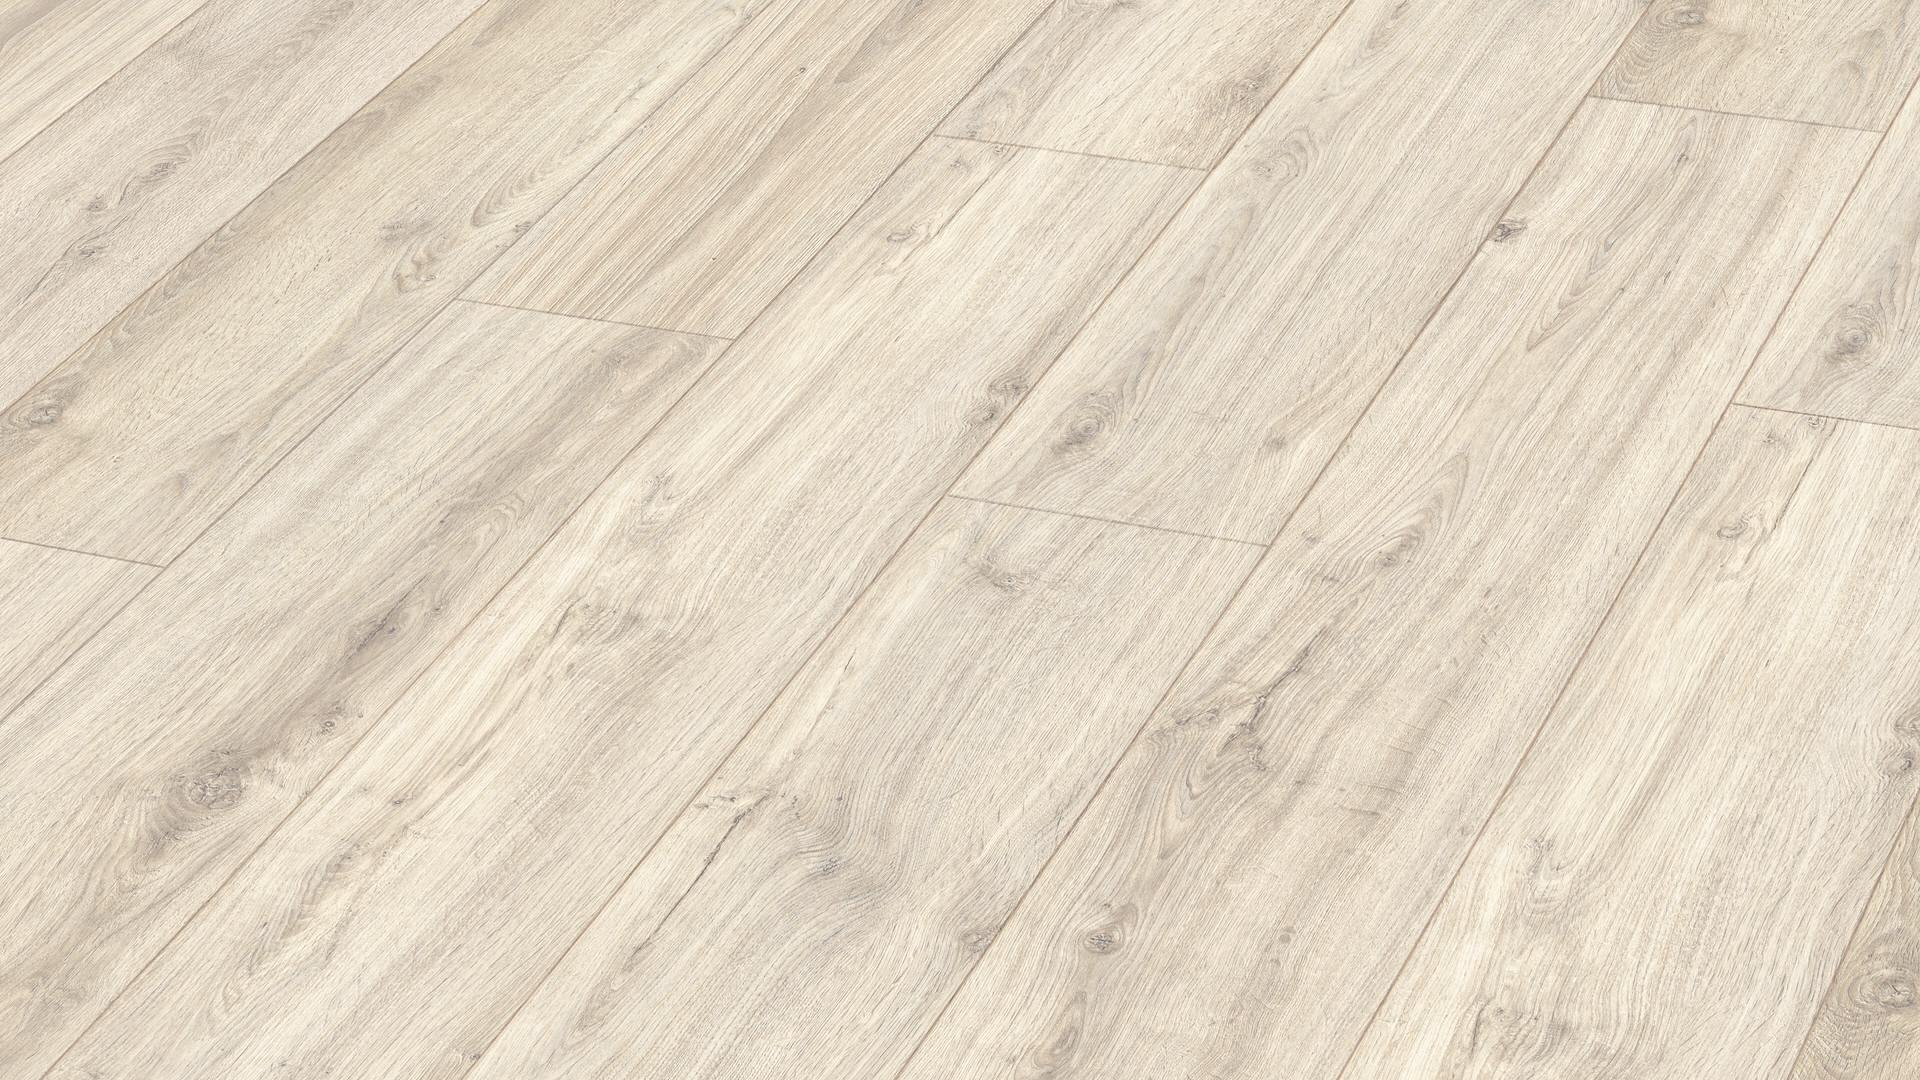 Design flooring MeisterDesign. flex DD 400 Polar oak 6994